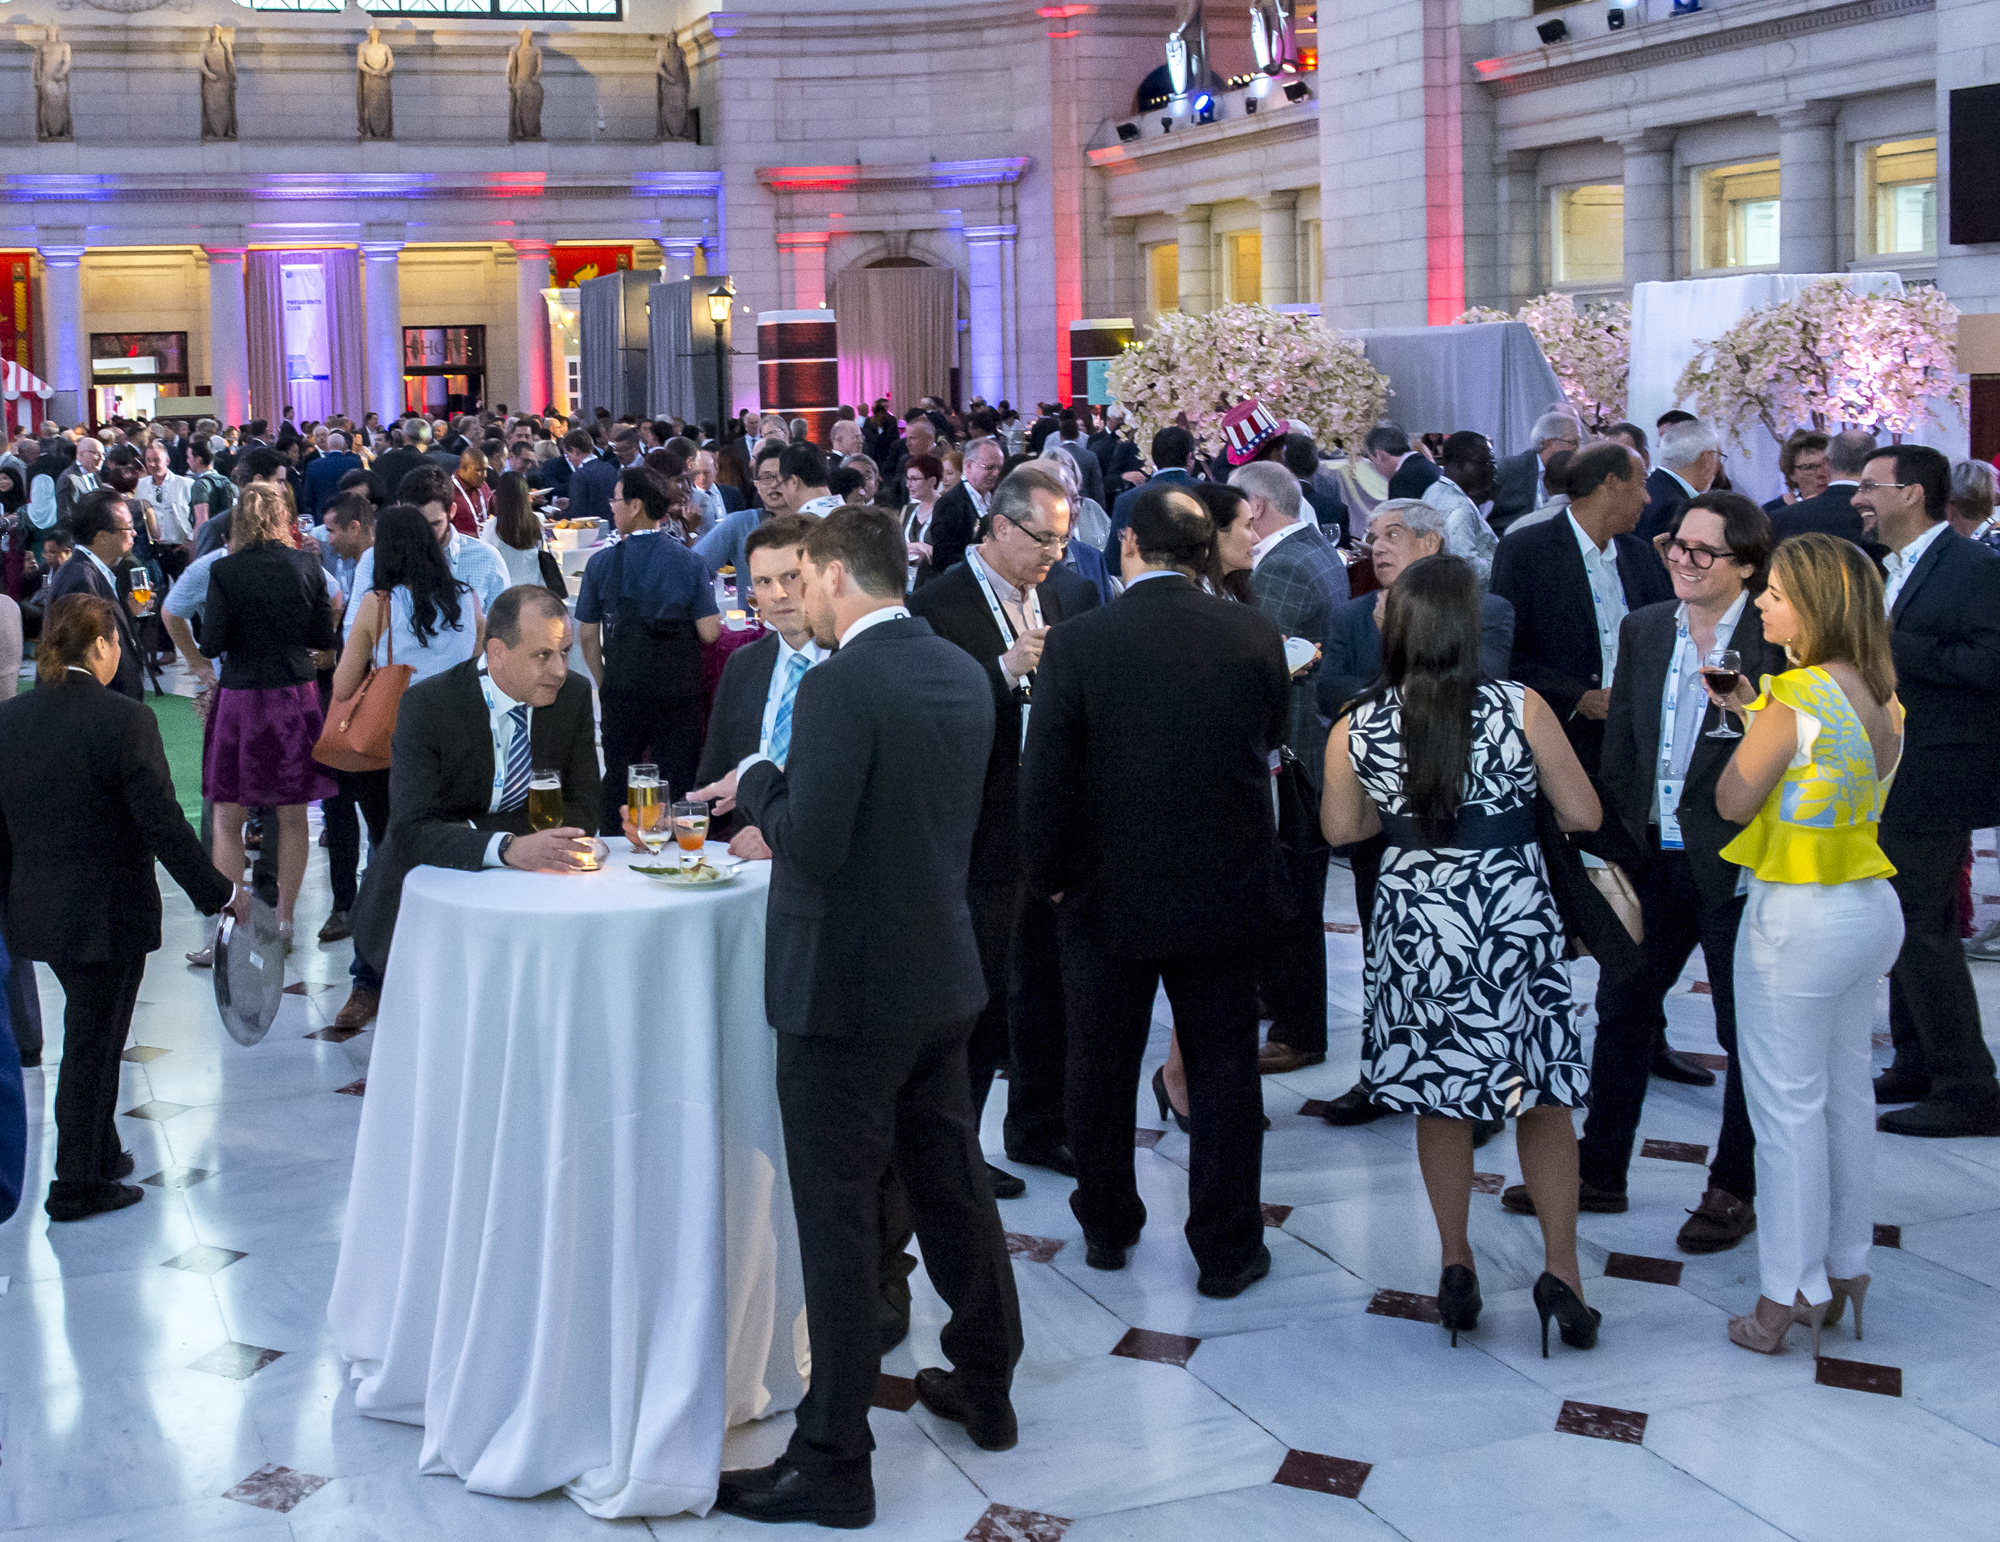 LNG Welcome Reception